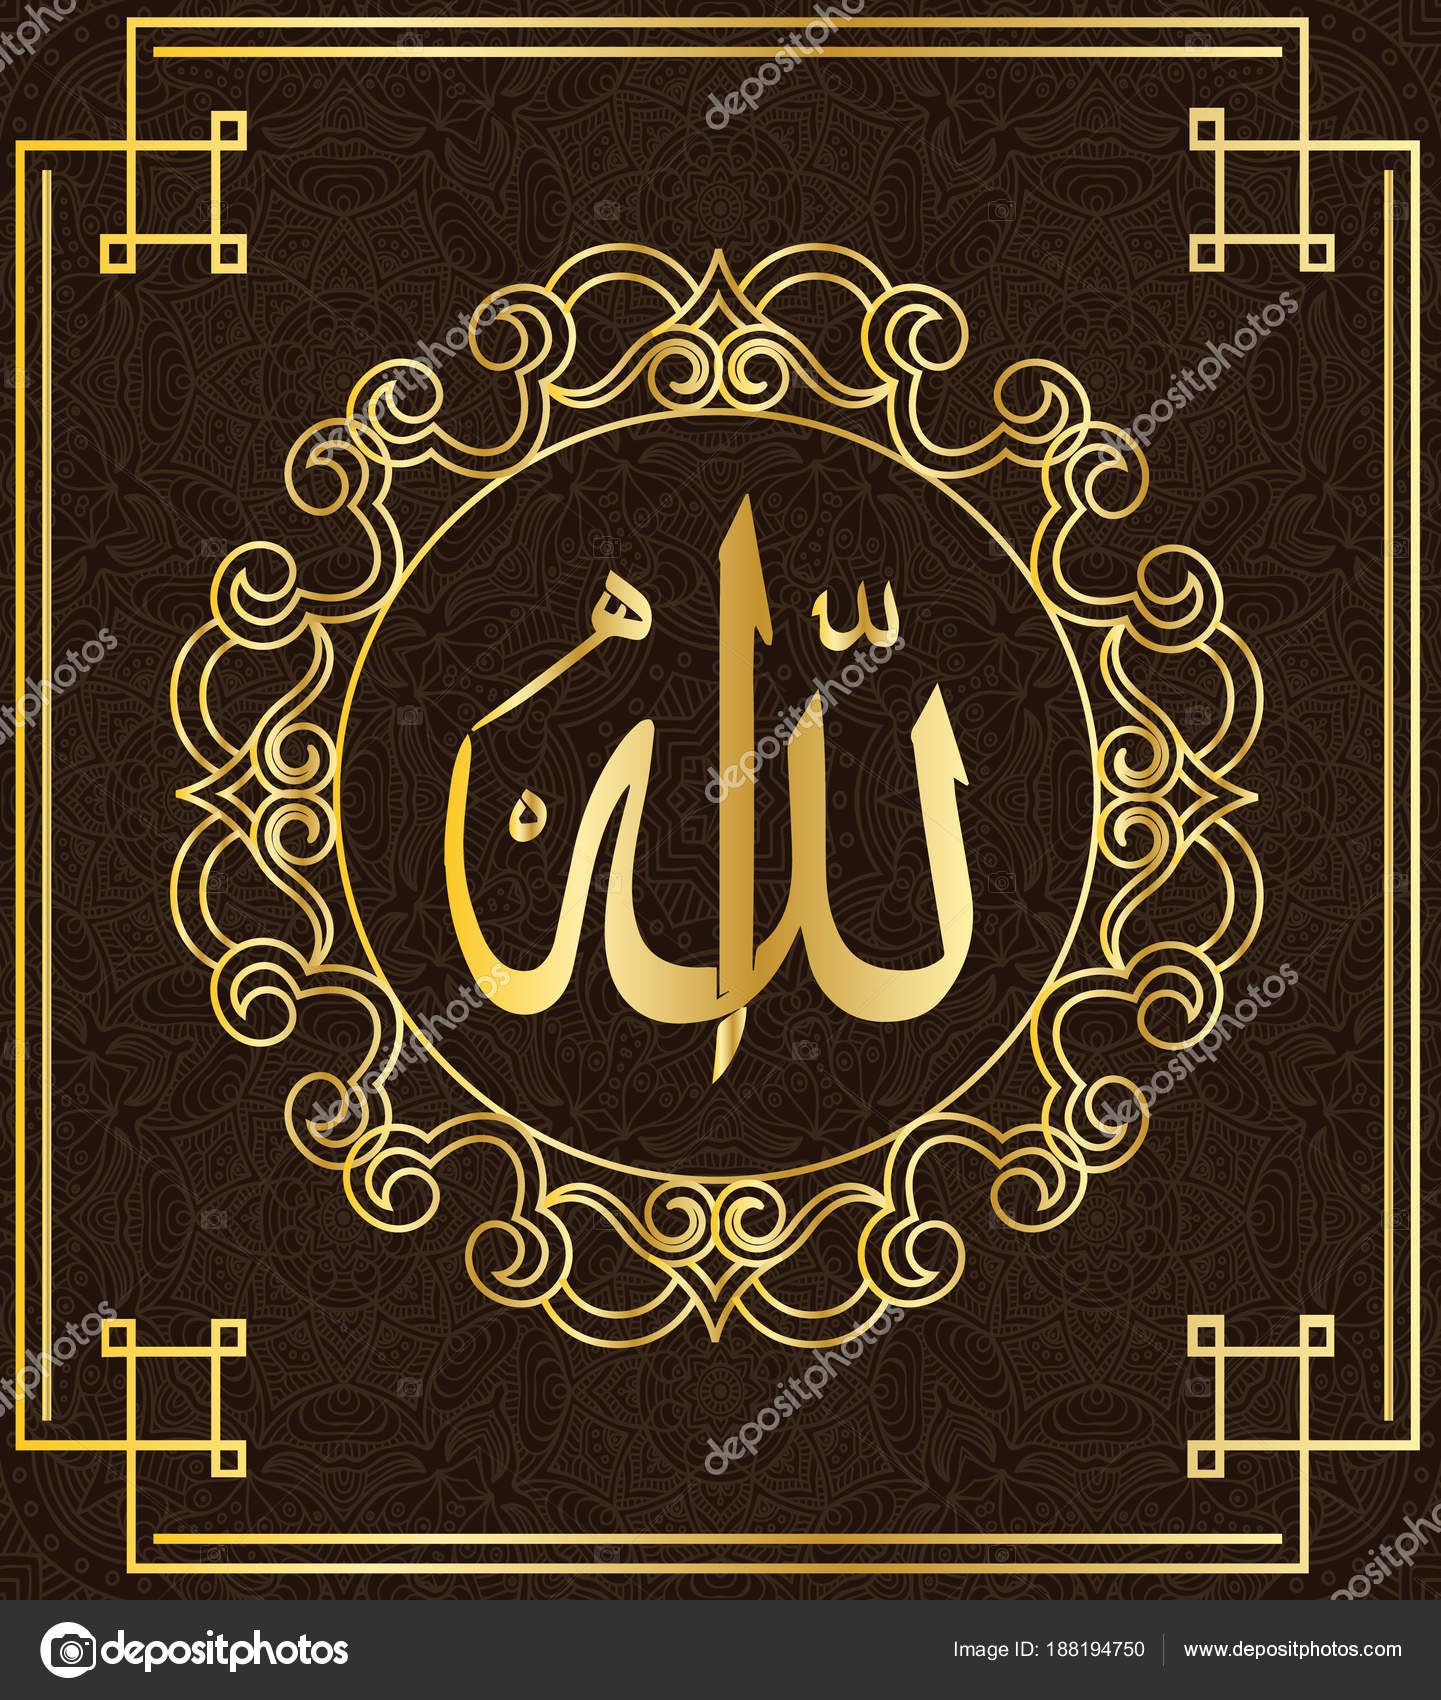 Islamic Calligraphy Allah Can Be Used For The Design Of